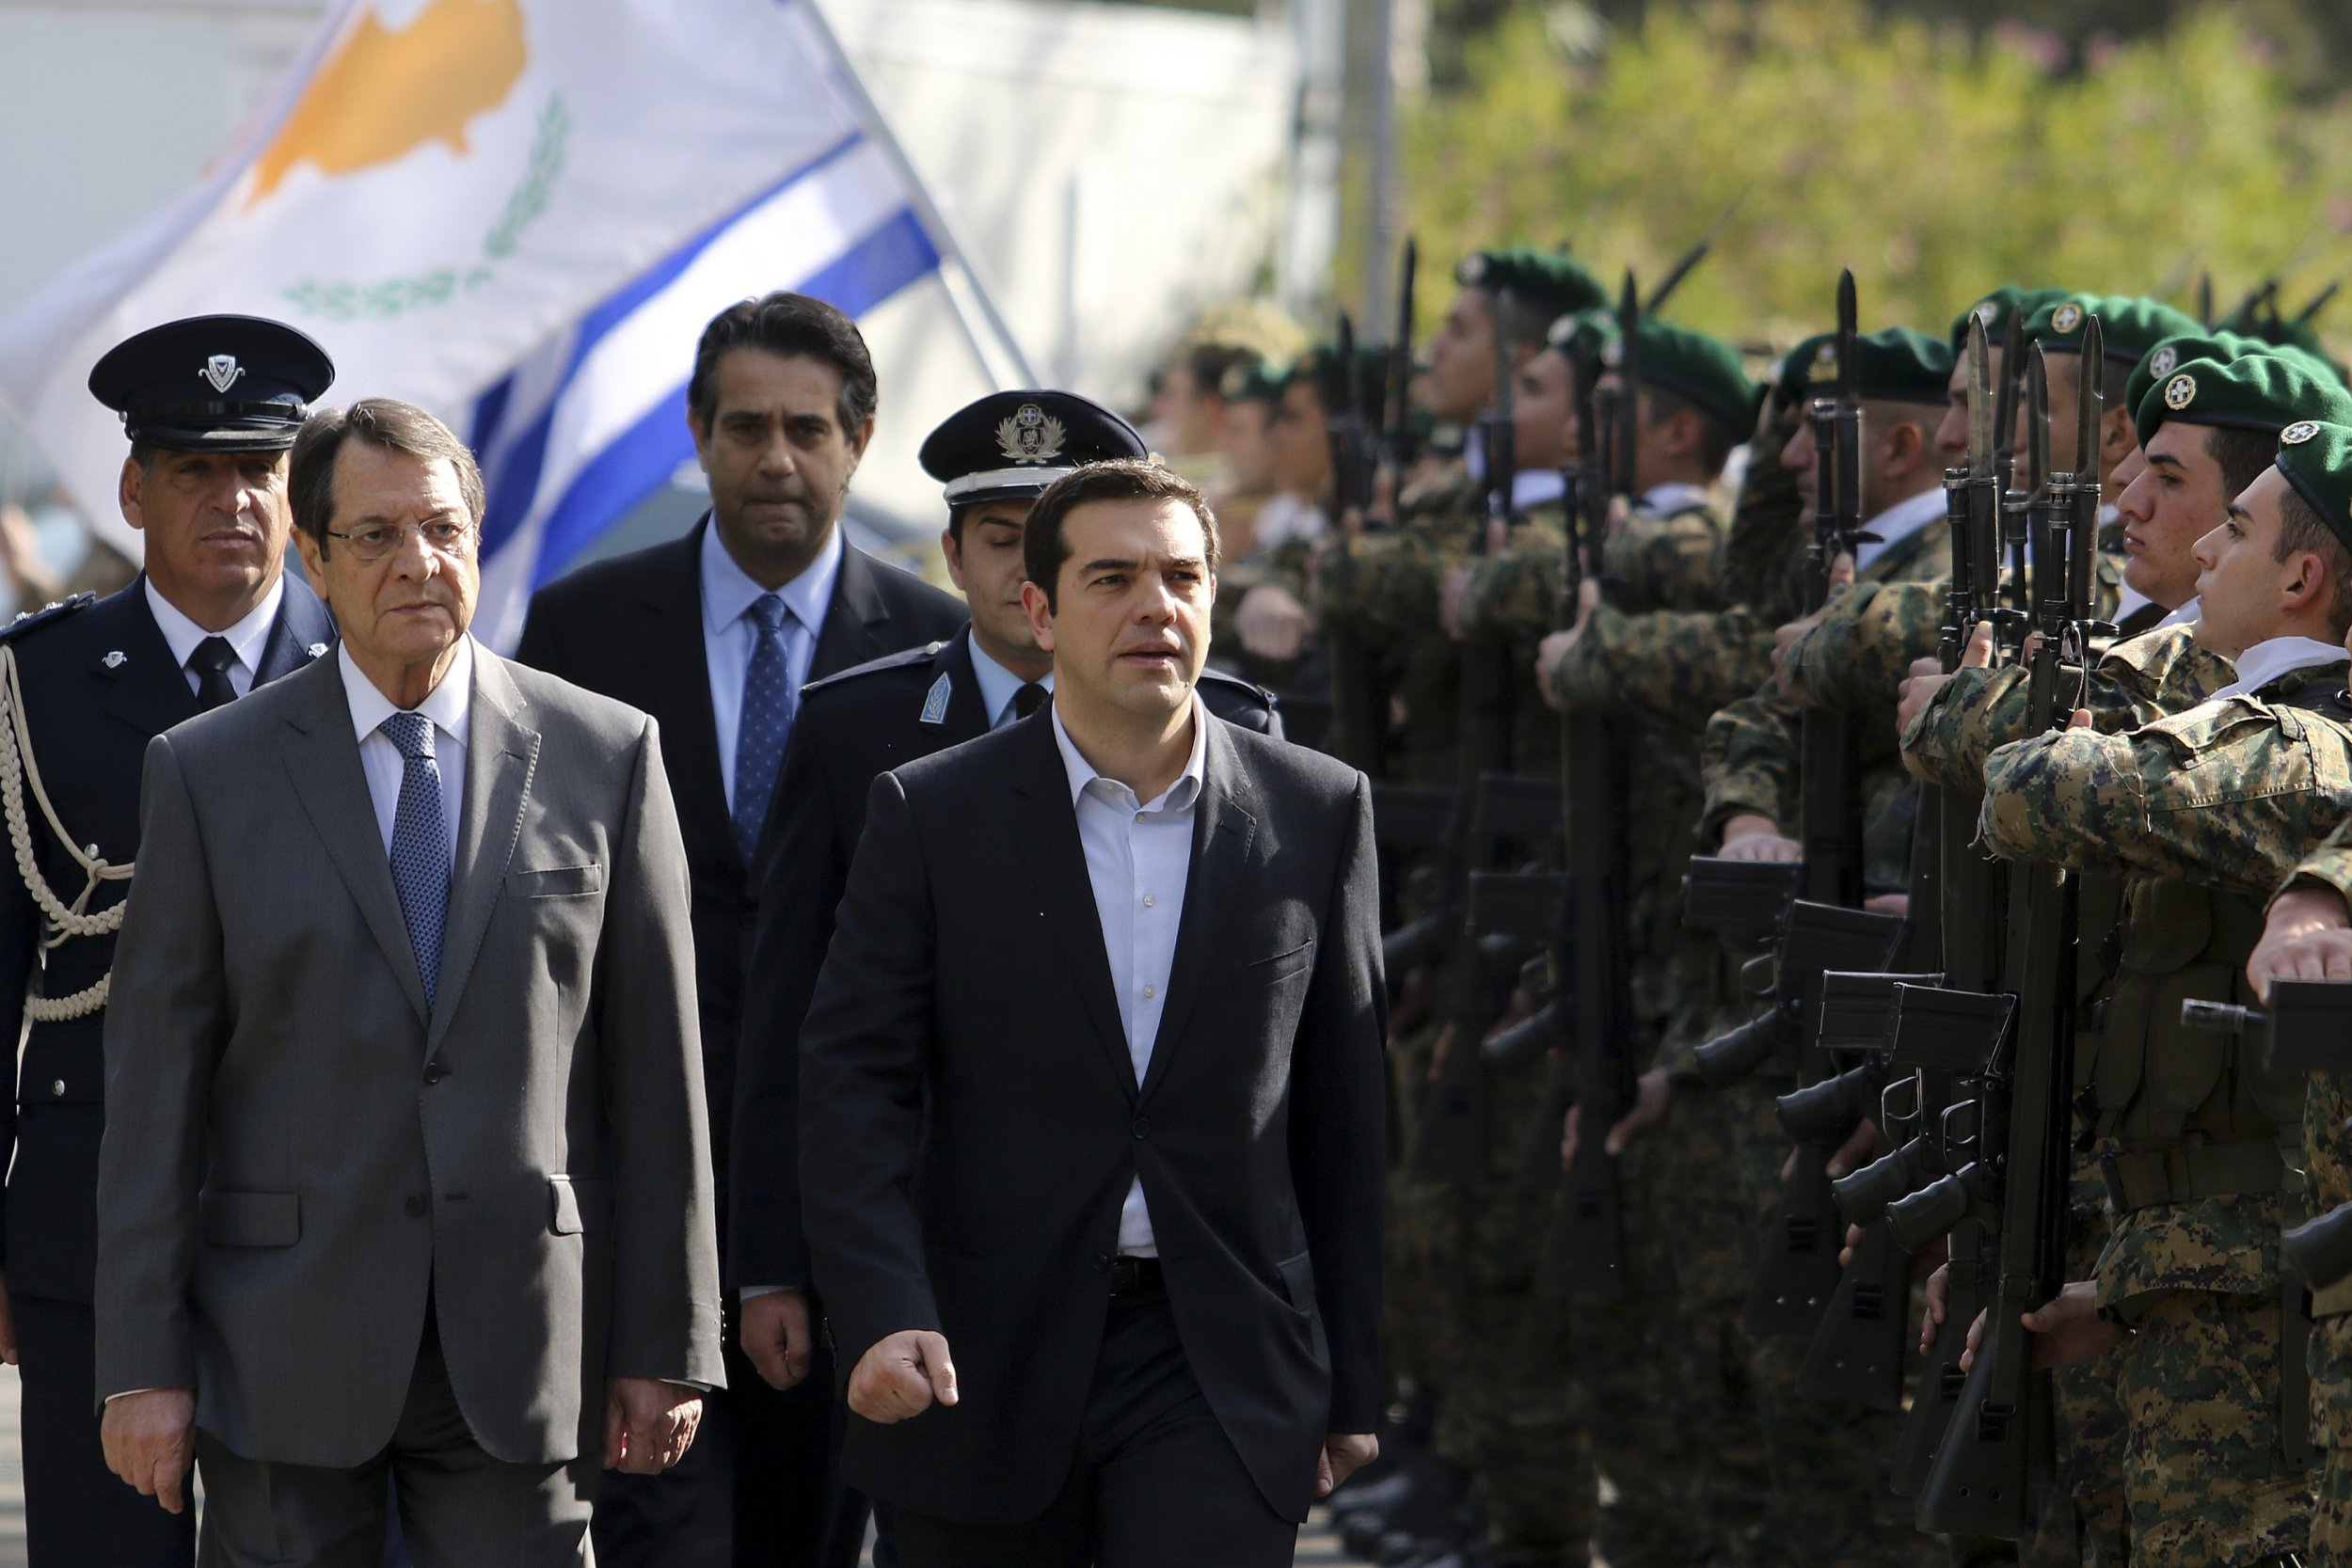 Anastasiades and Tsipras